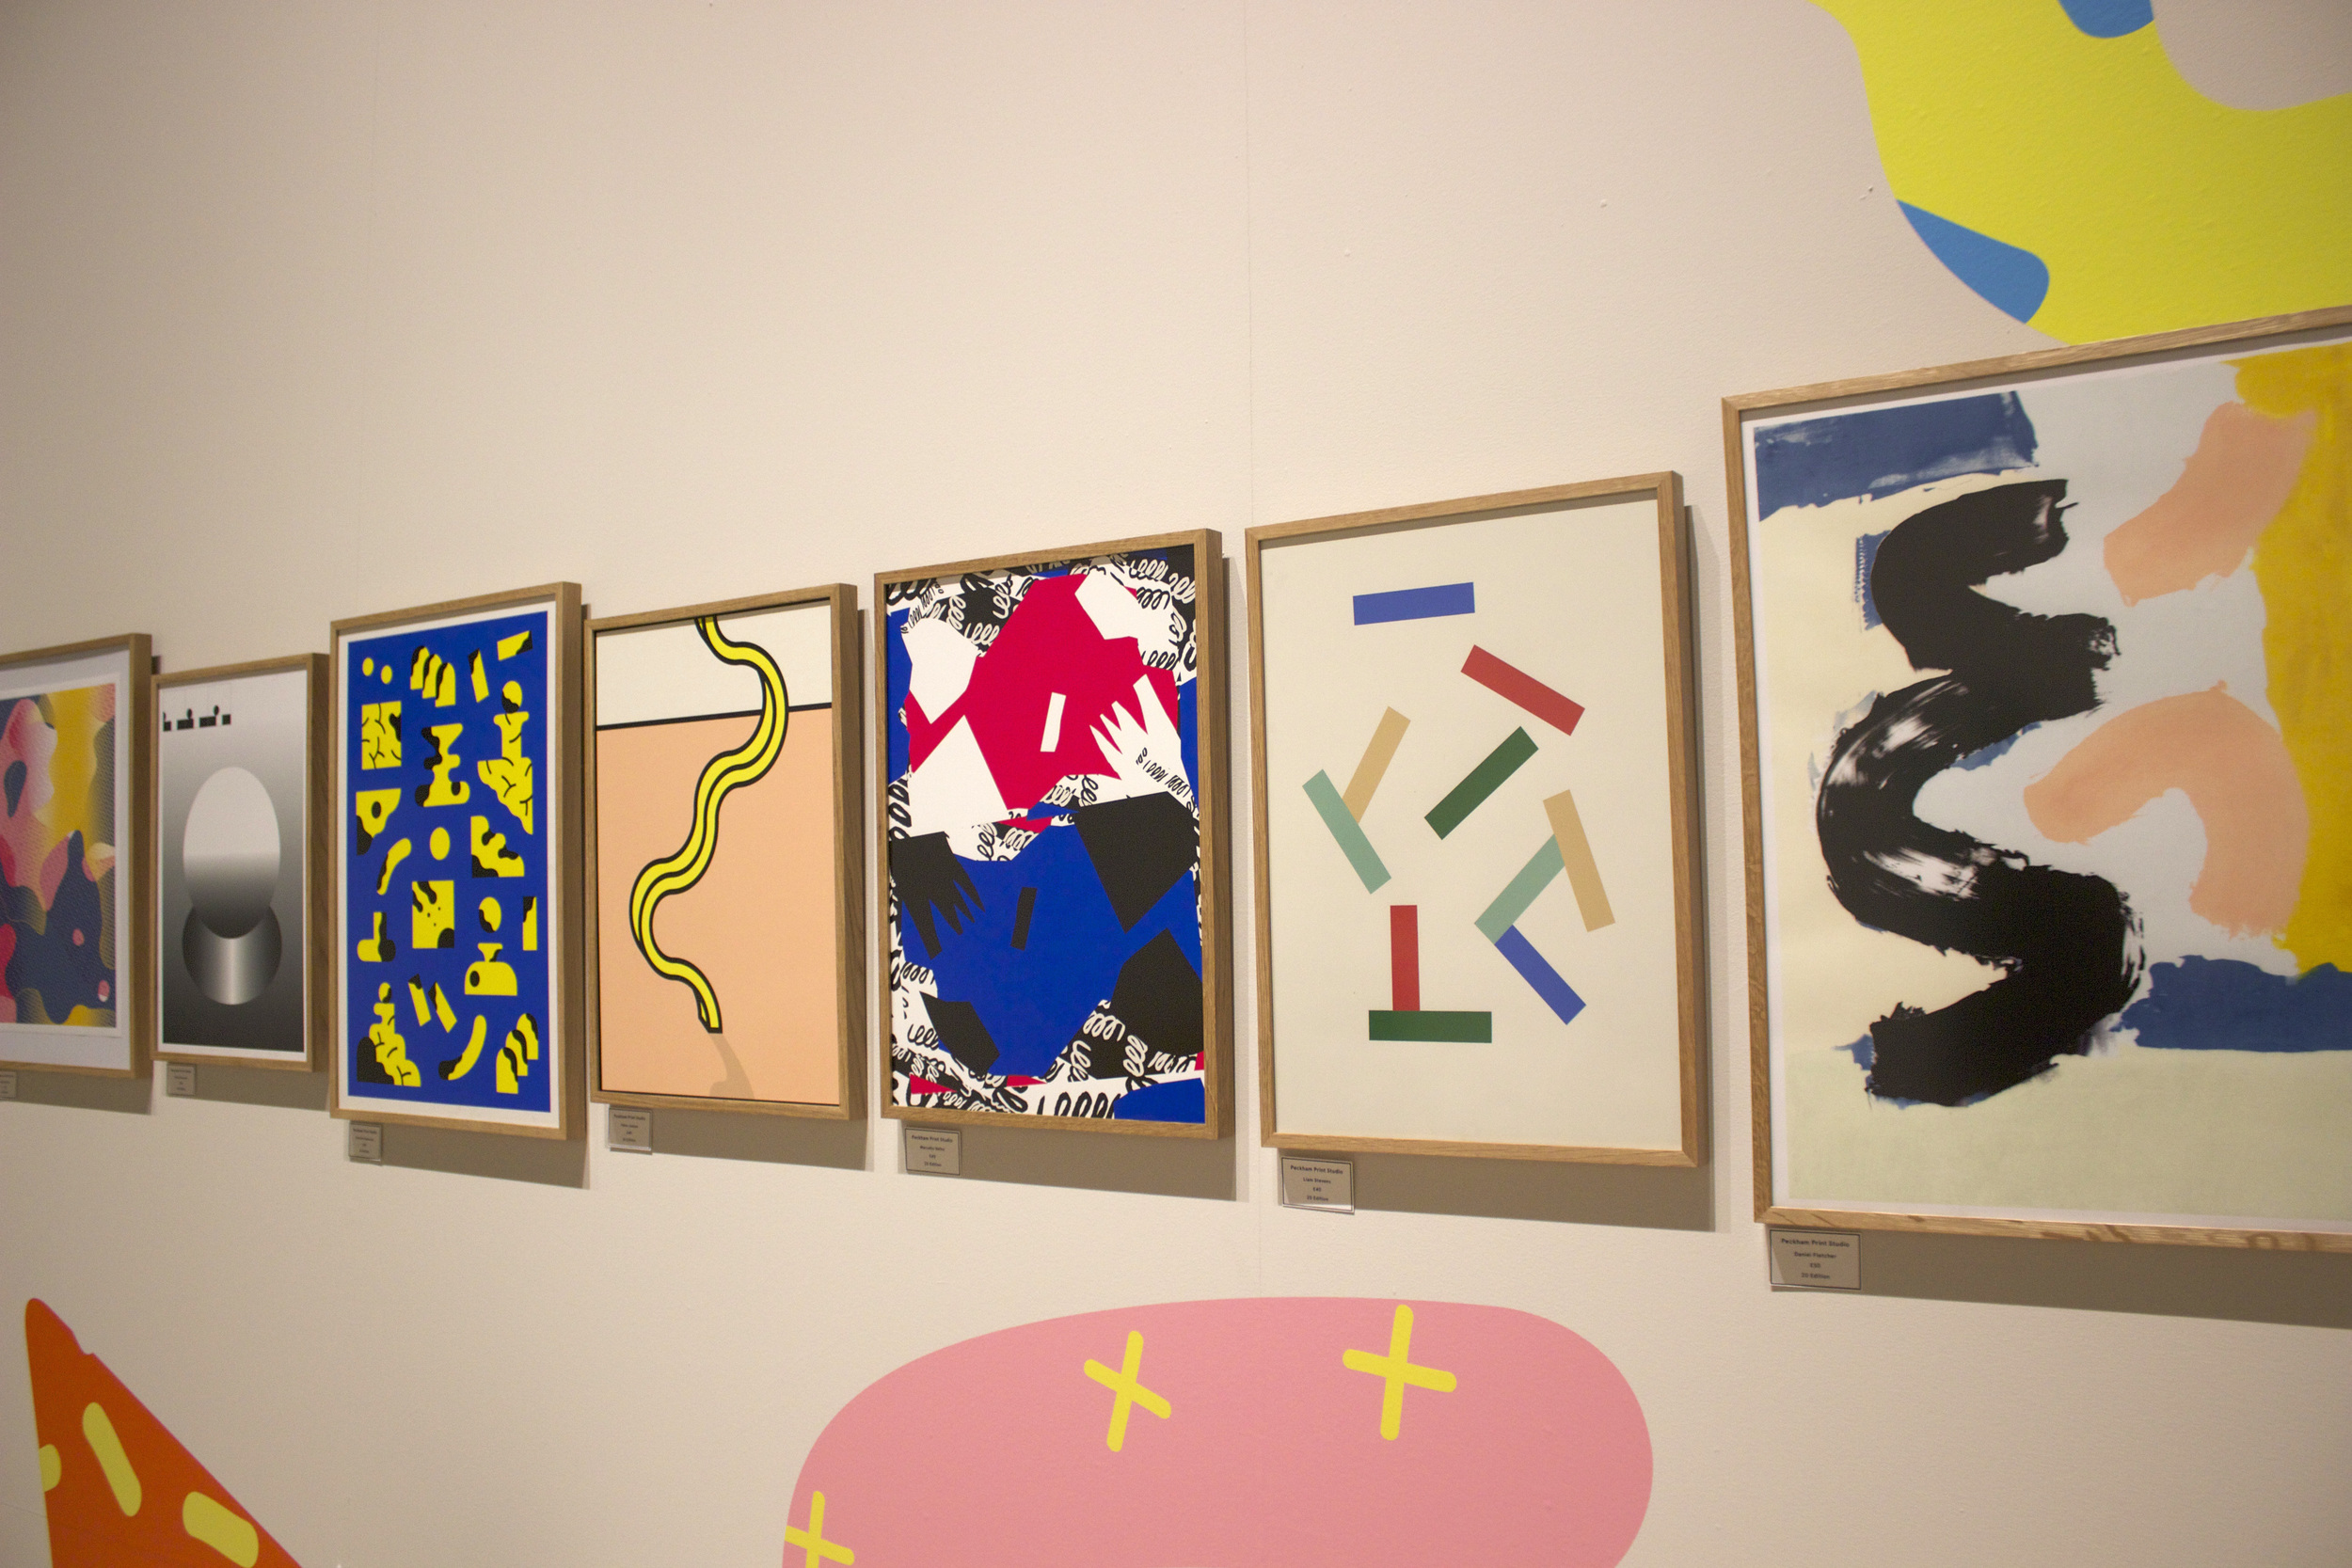 Linear display + wall painting